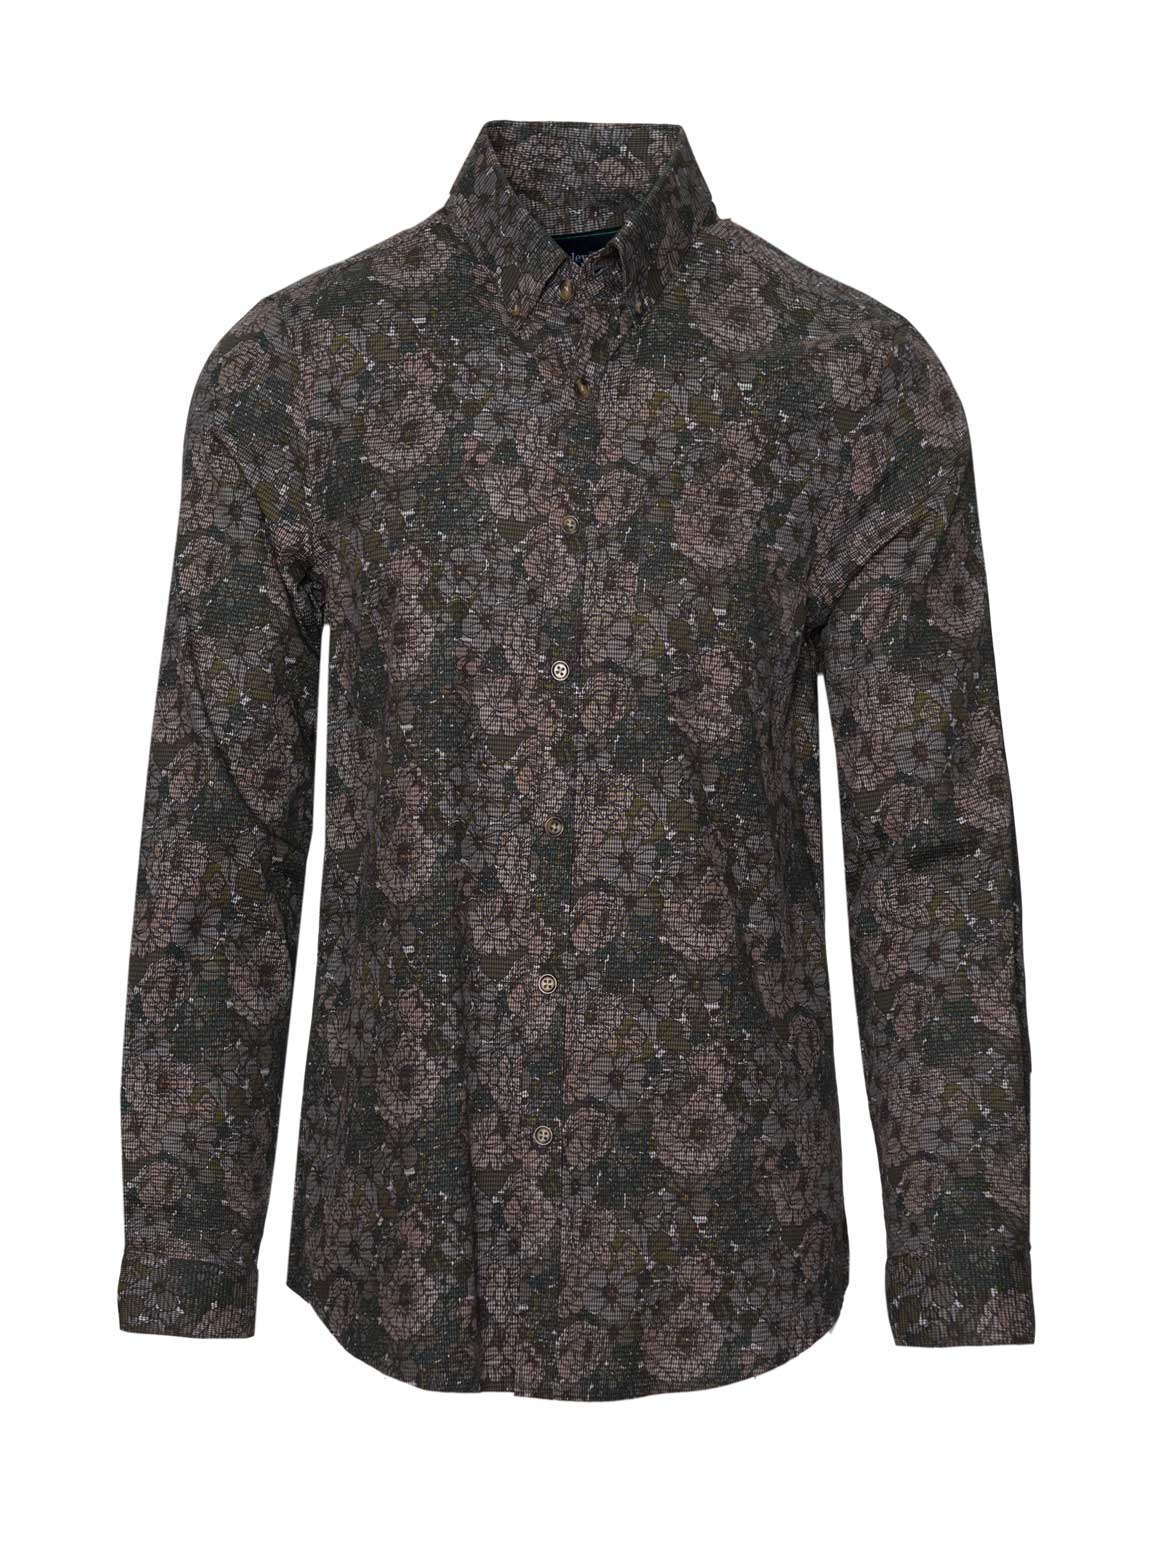 Long Sleeve Shirt - Floral Camo